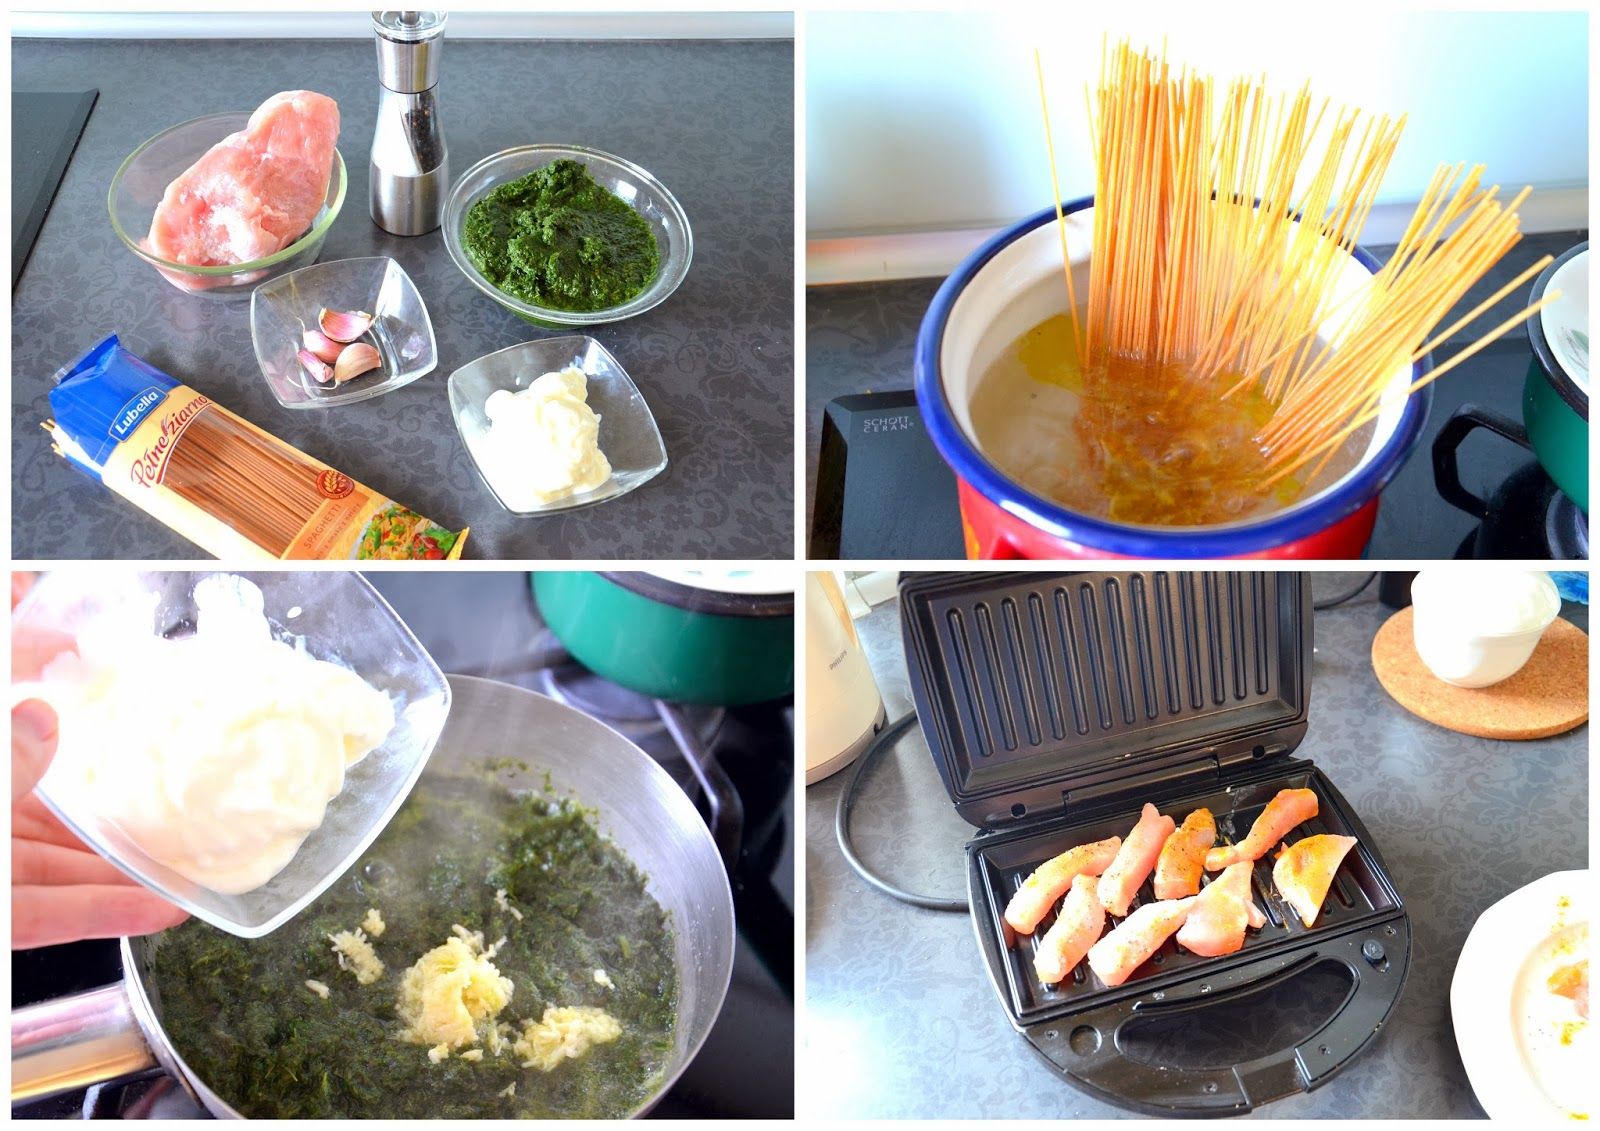 COOKING : PASTA WITH SPINACH AND GRILLED TURKEY